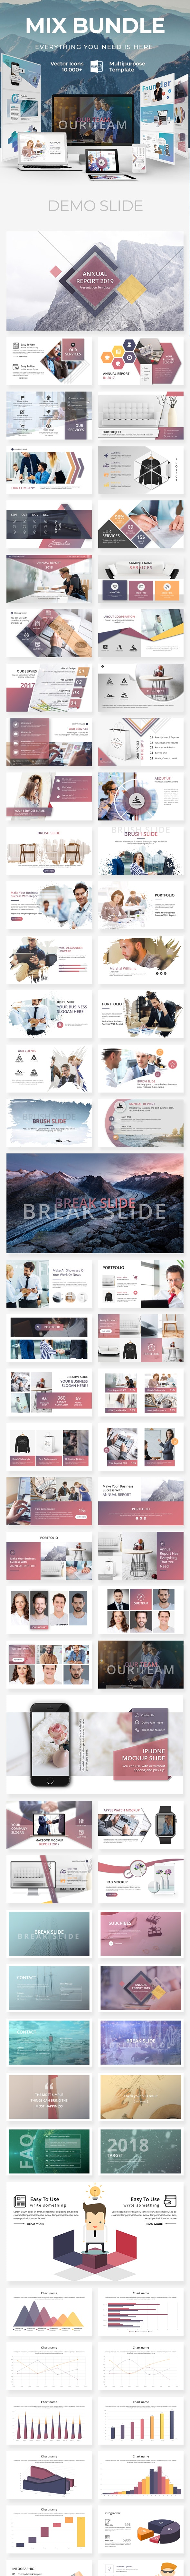 Mix Business - Bundle 2 in 1 Keynote Template - Business Keynote Templates